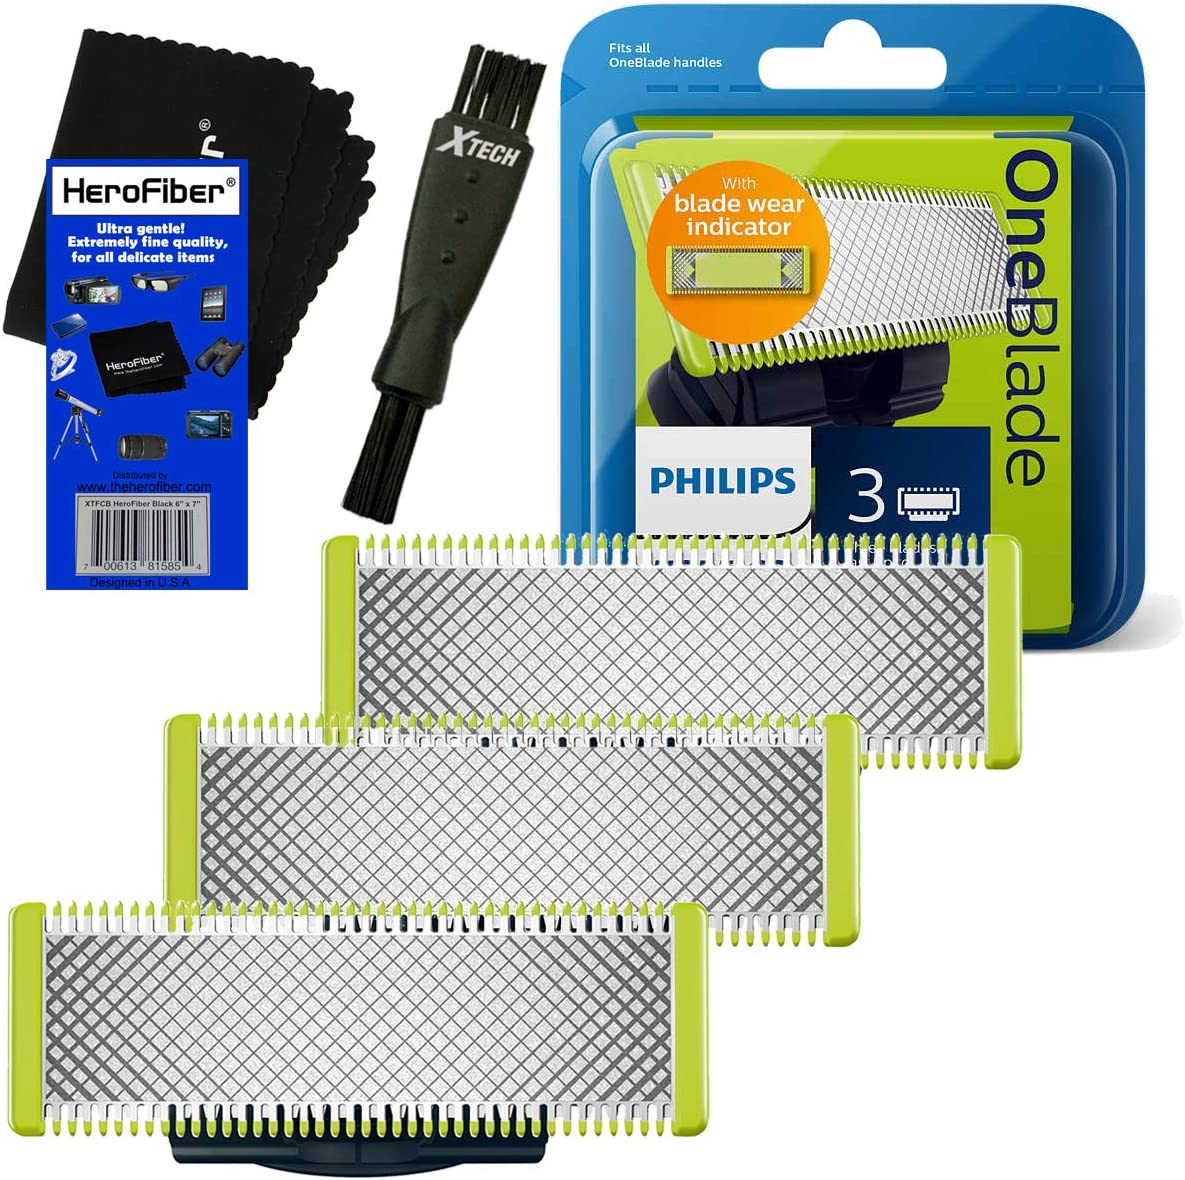 HeroFiber Philips Norelco OneBlade Replaceable Blades (3 Pack) for OneBlade QP2520, QP2530, QP2630, Pro QP6510, QP6520 Electric Trimmers + Double Ended Shaver Brush + HeroFiber Gentle Cleaning Cloth